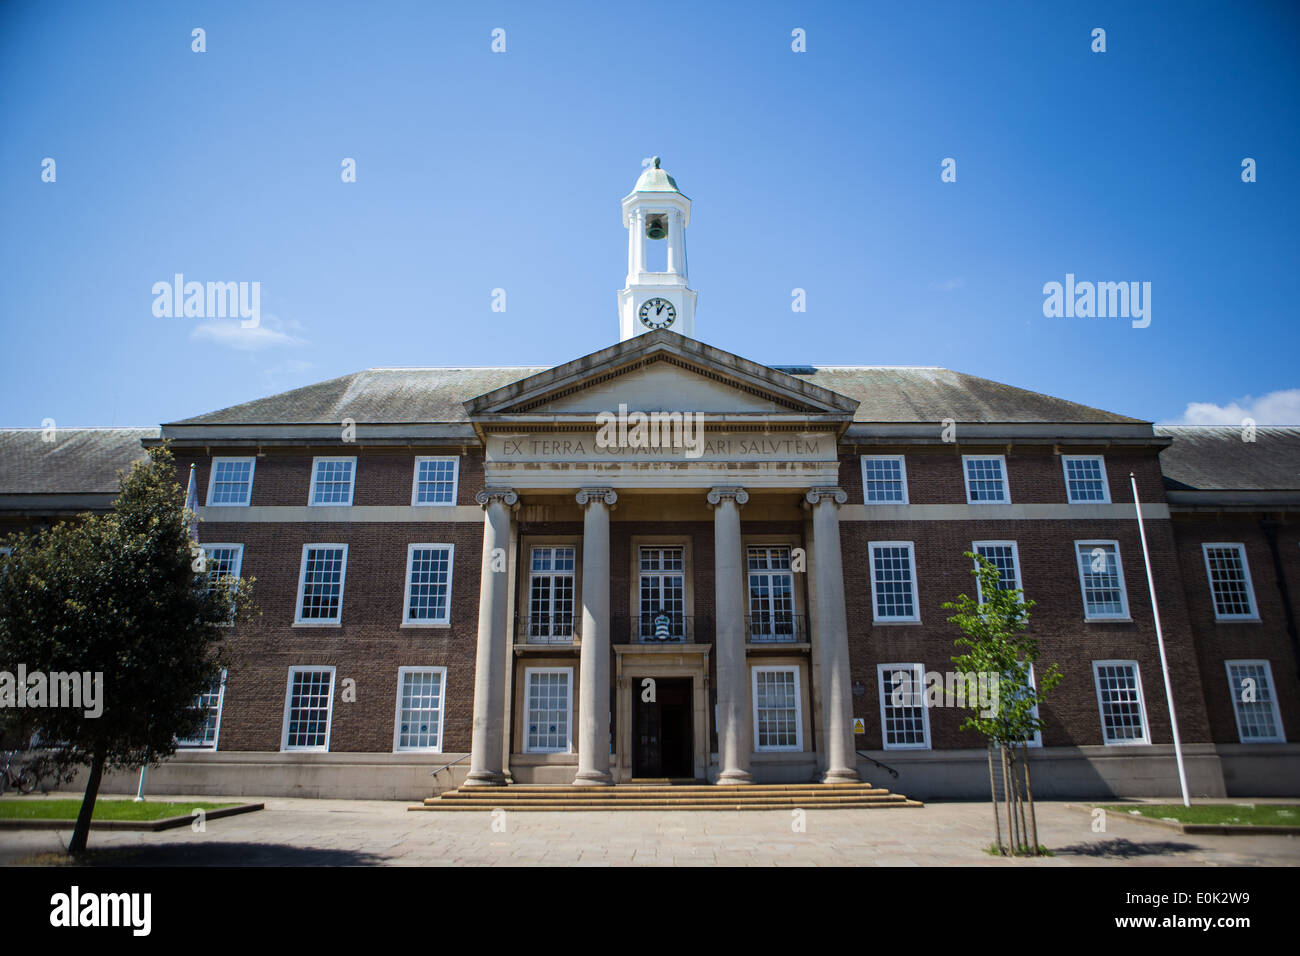 Worthing Town Hall on a sunny day Stock Photo